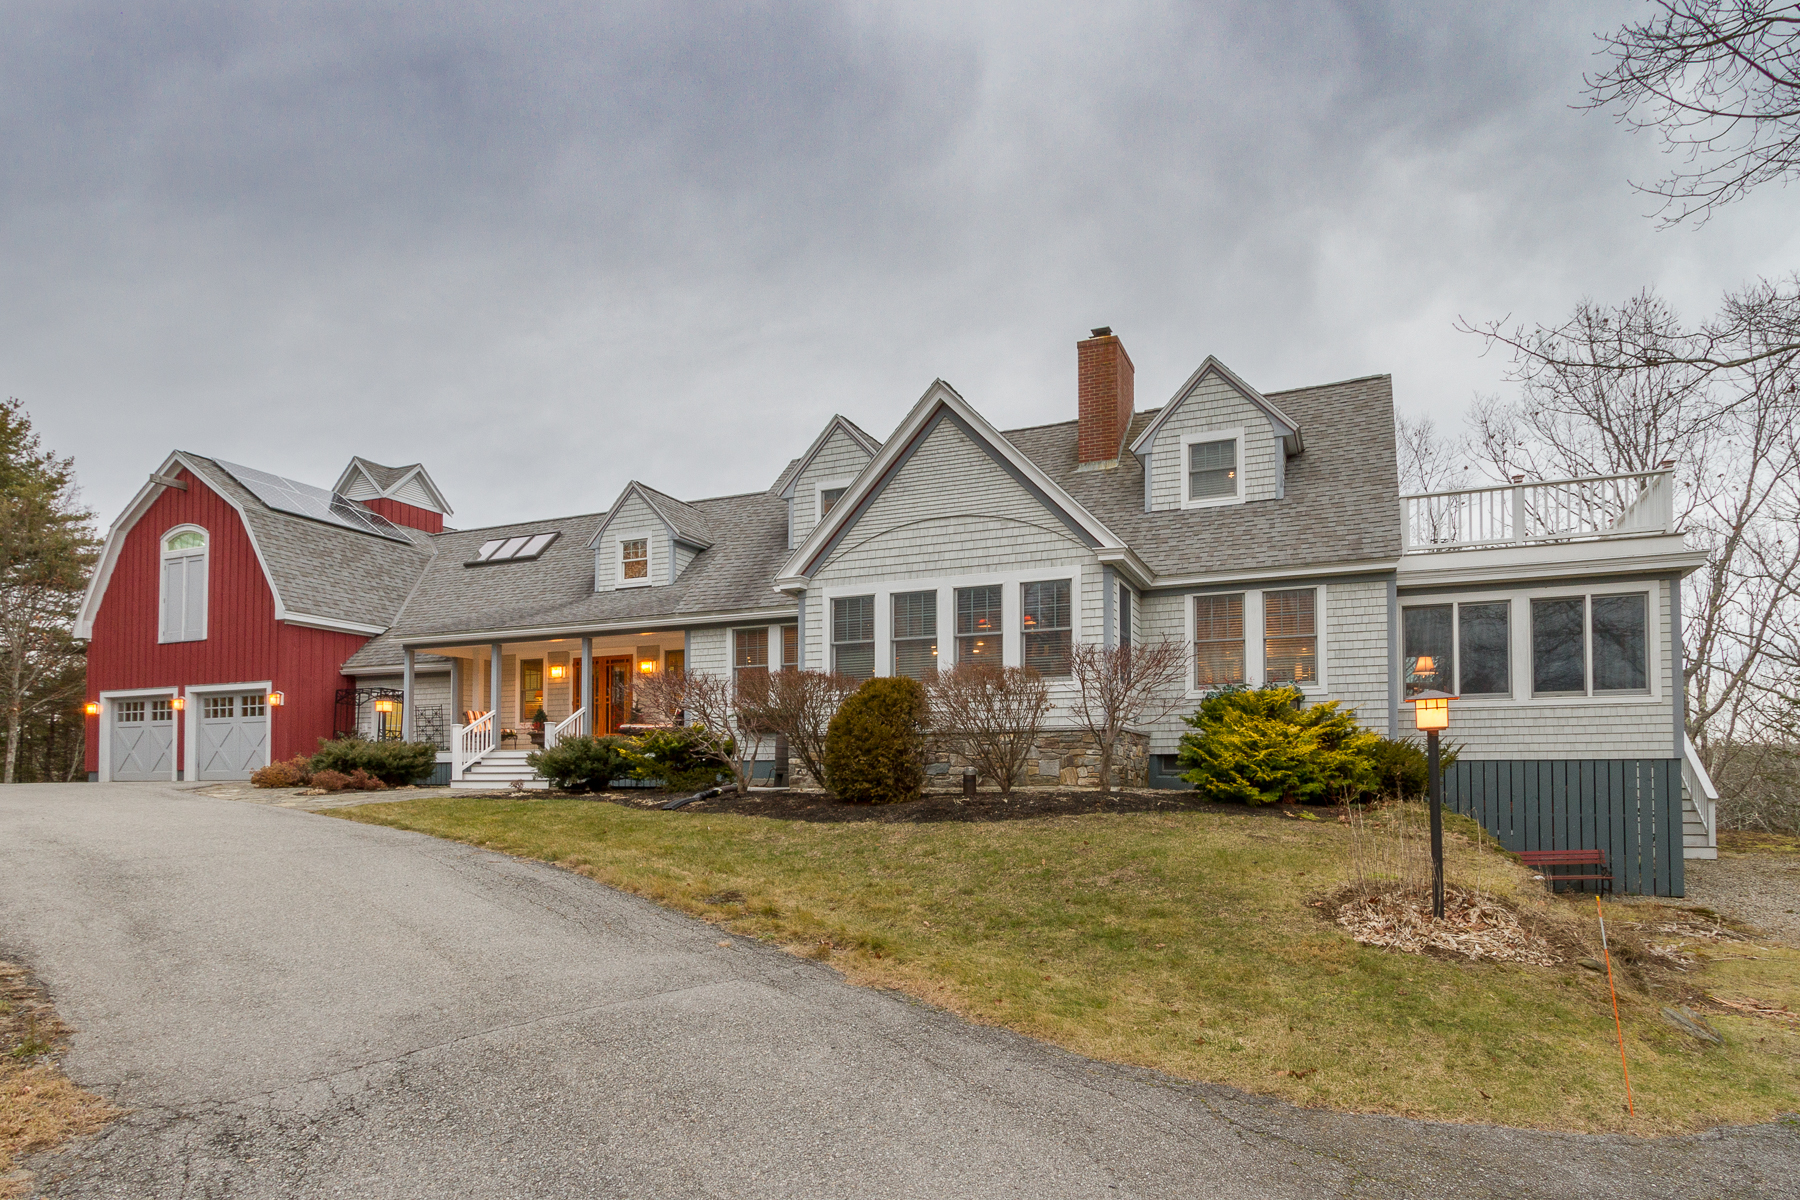 Single Family Home for Sale at 33 Whippoorwill Drive Boothbay, Maine, 04537 United States